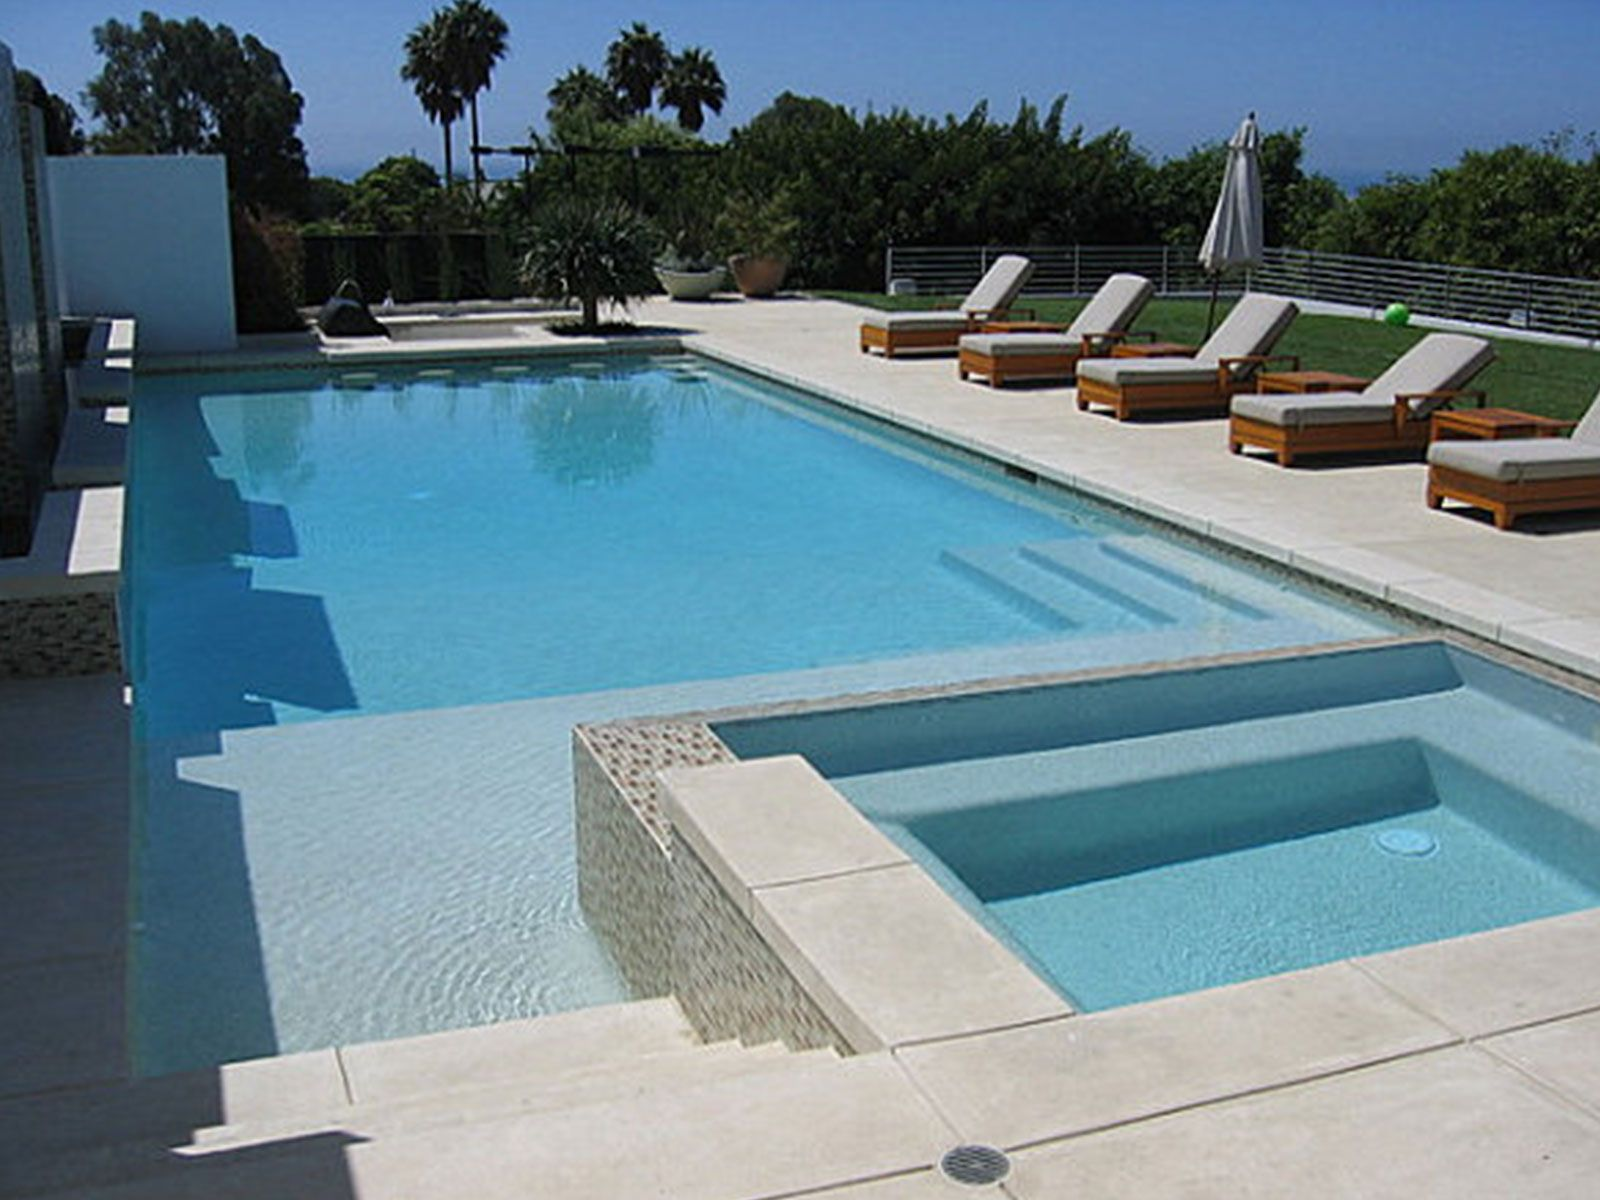 Simple swimming pool design image modern creative swimming for Pool design pinterest